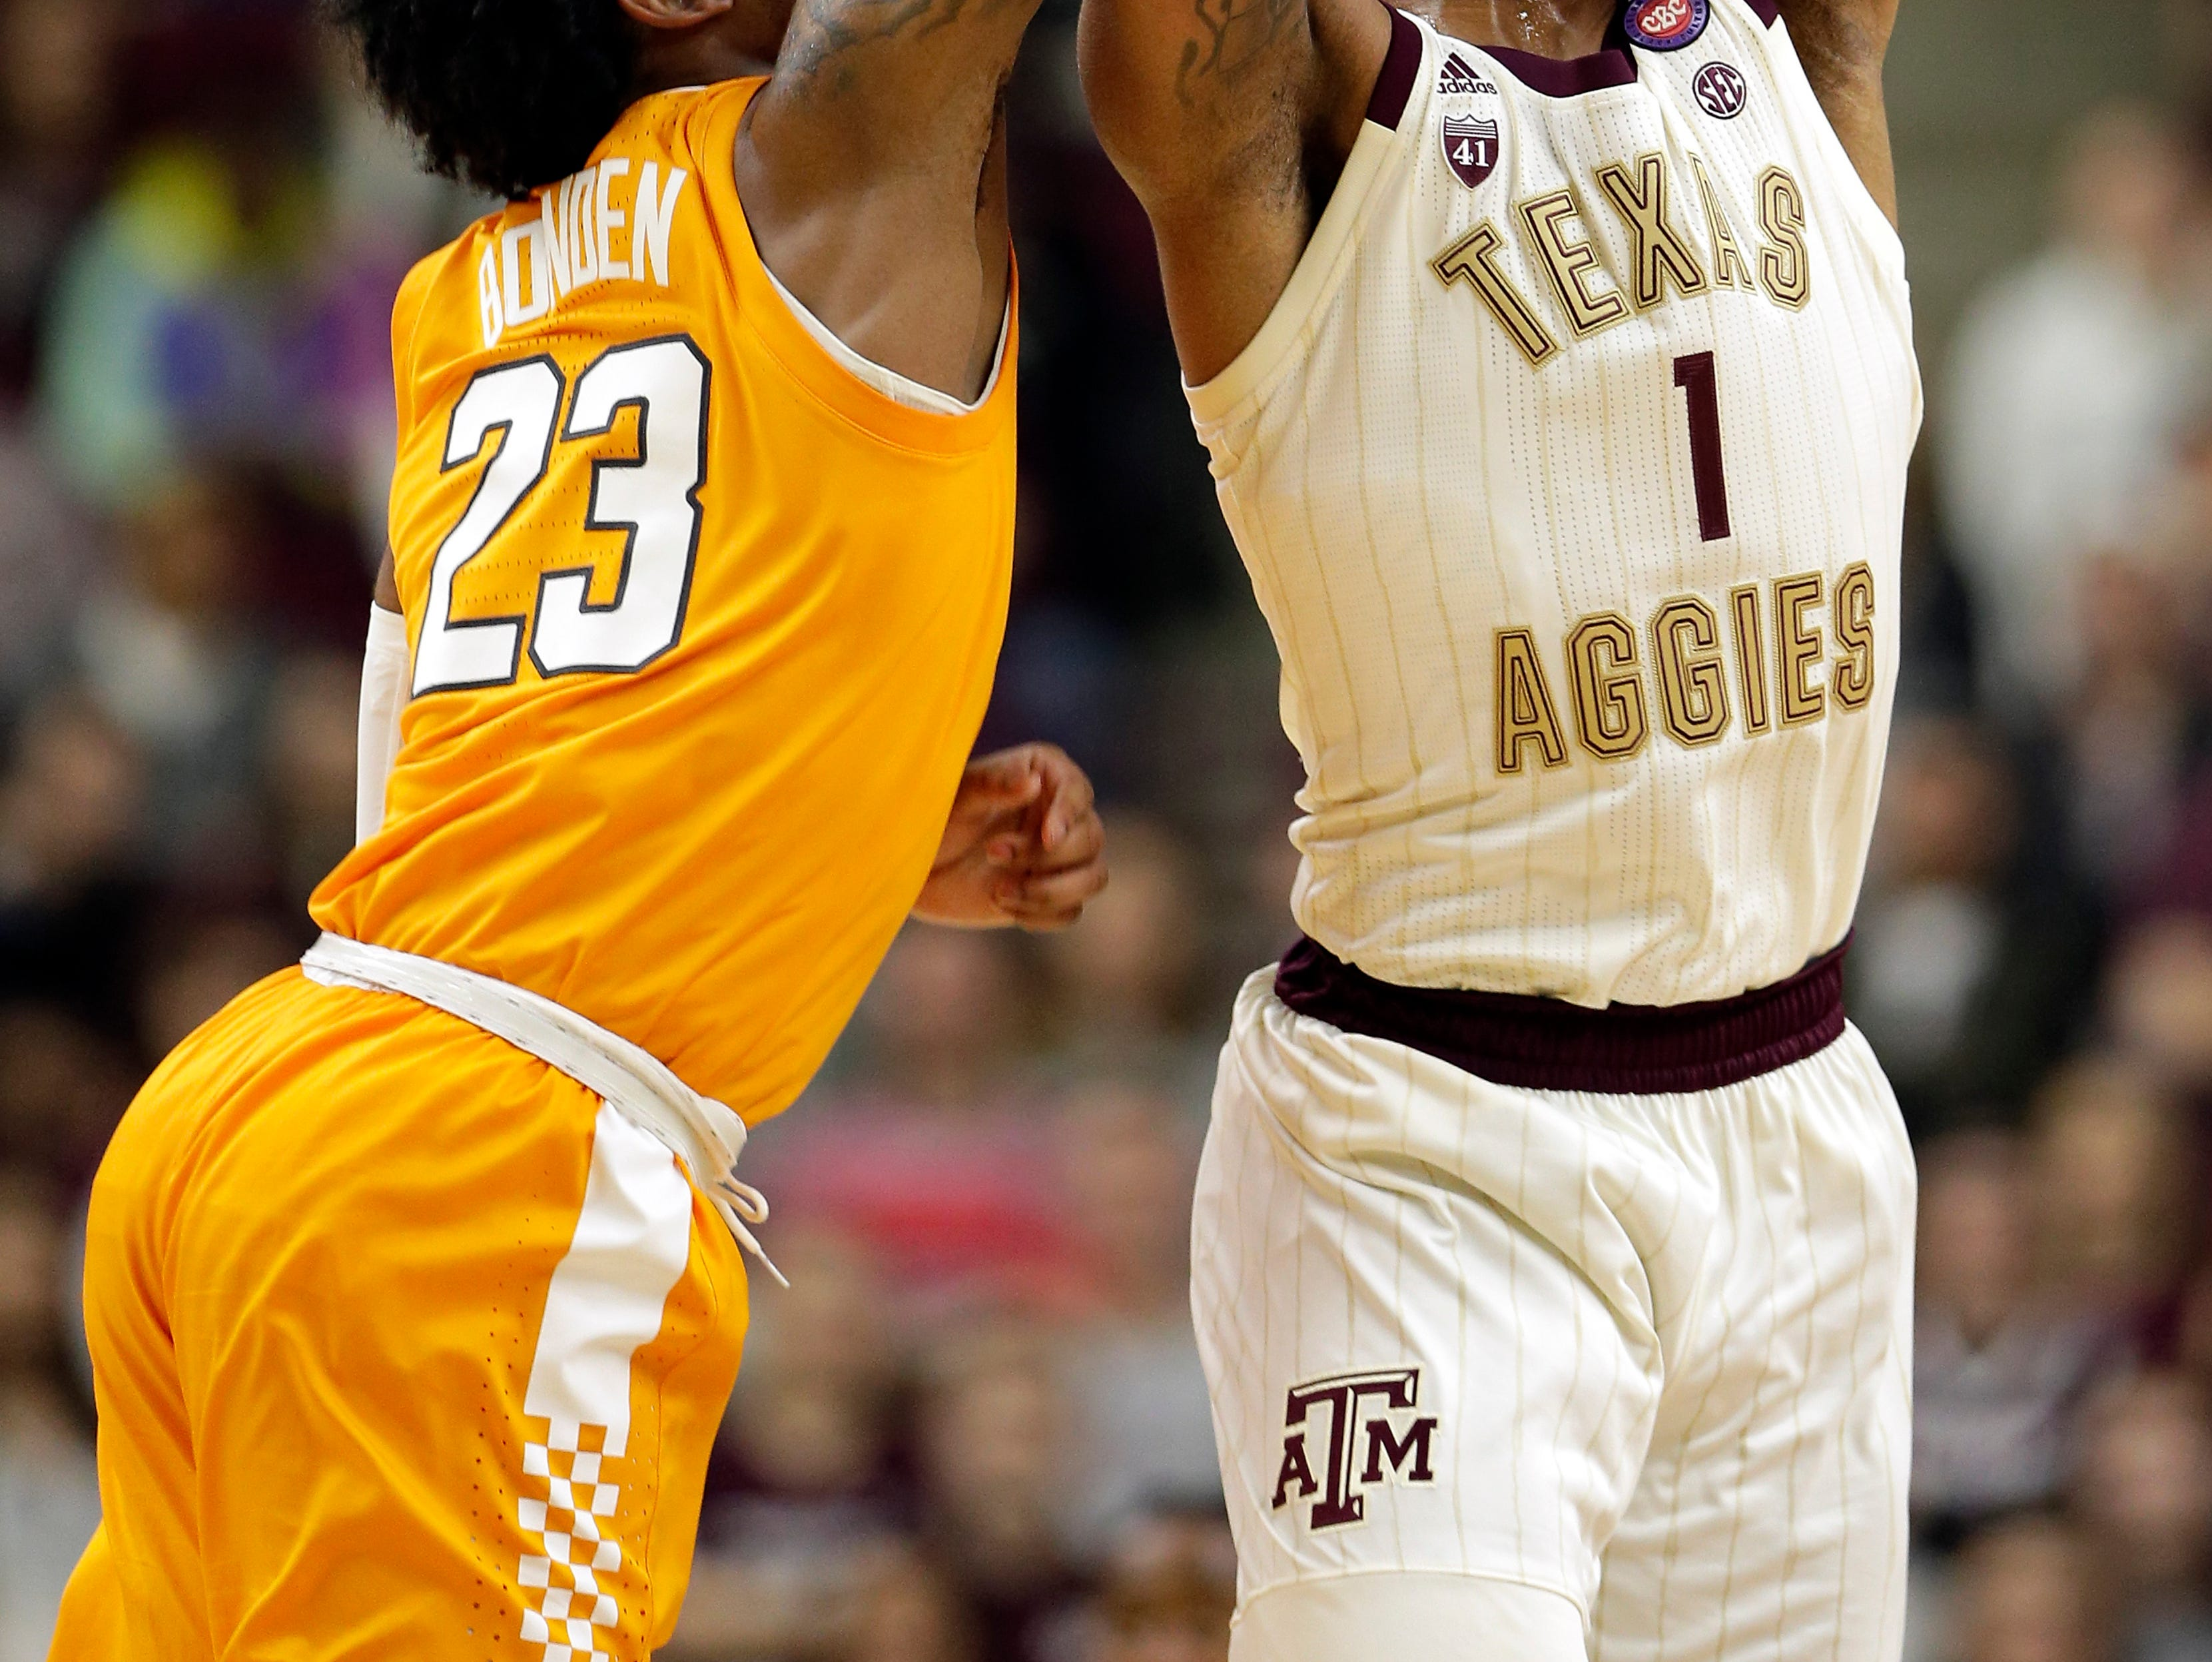 Texas A&M guard Savion Flagg (1) gets control of a midcourt high pass from Tennessee guard Jordan Bowden (23) during the first half of an NCAA college basketball game Saturday, Feb. 2, 2019, in College Station, Texas.